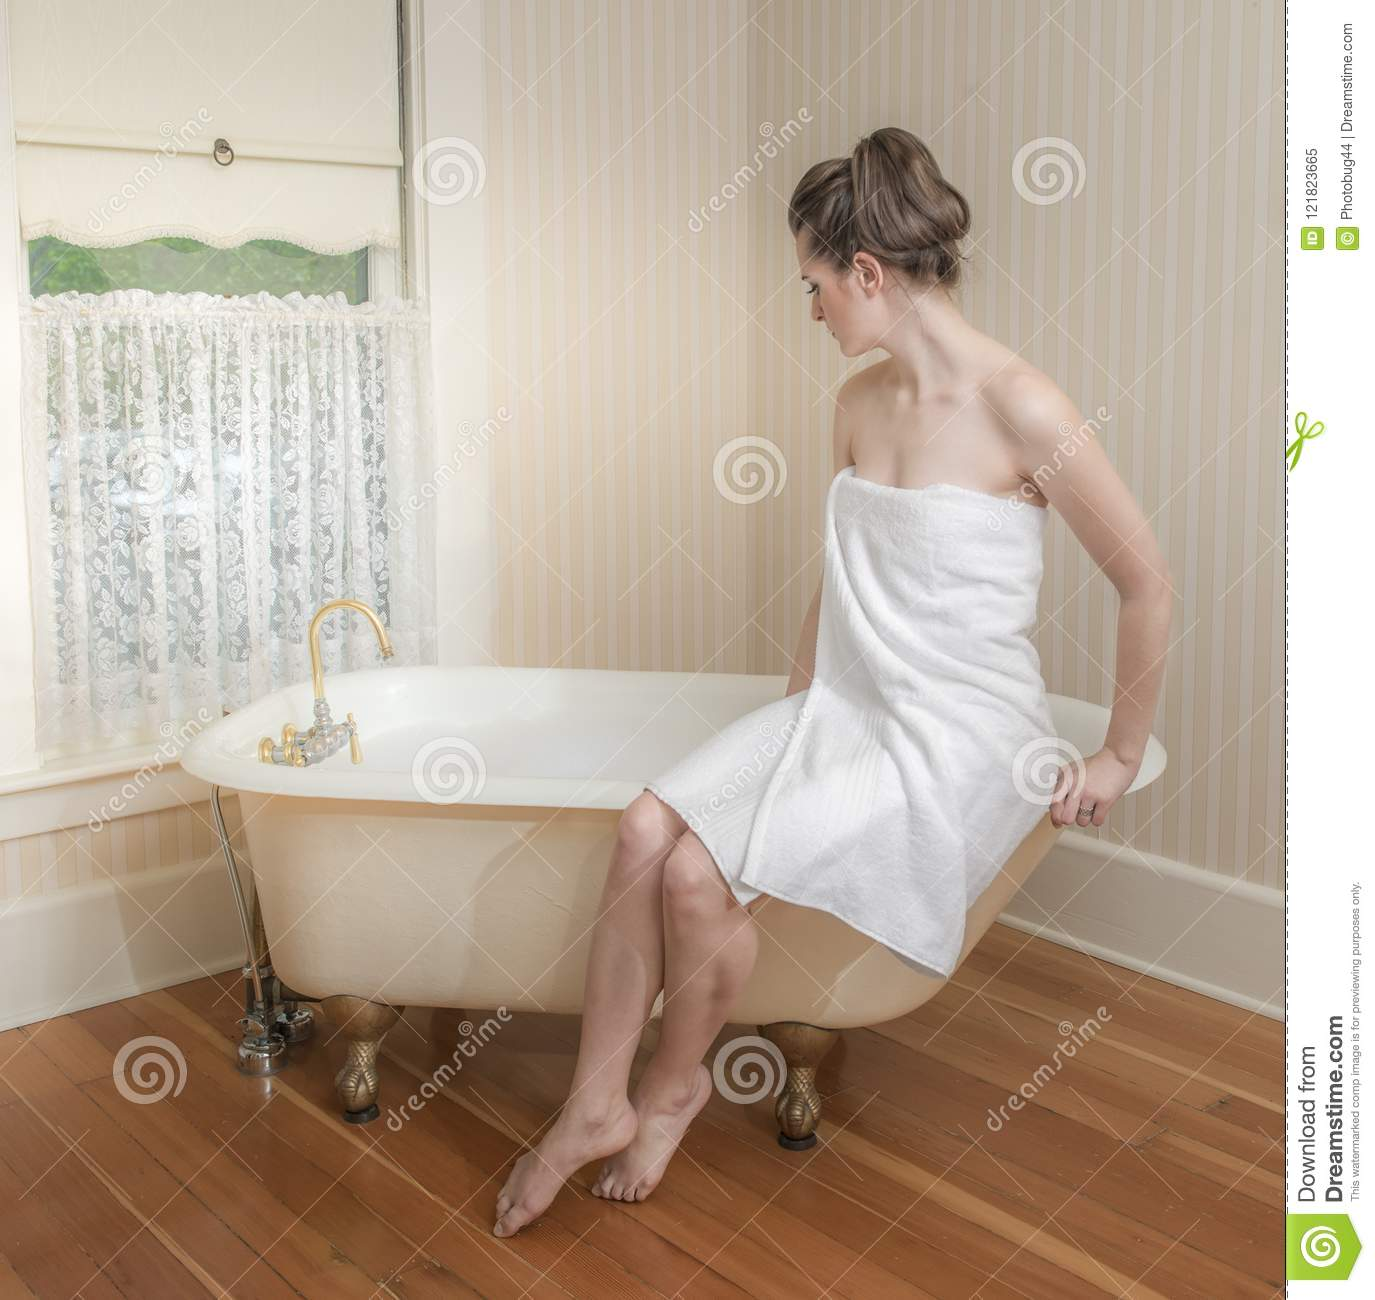 Young Naked Woman Sitting In Bathtub Translucent Cloth